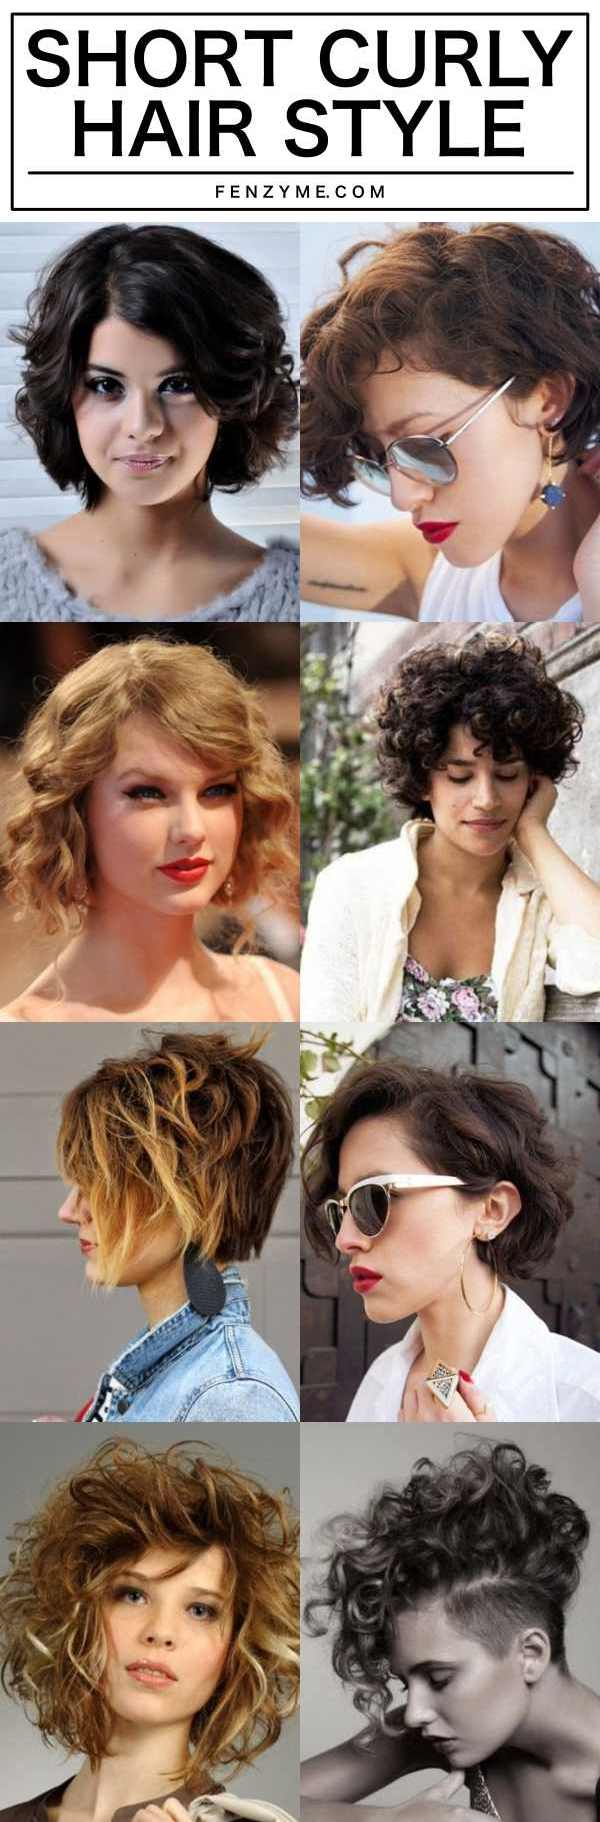 SHORT-CURLY-HAIR-STYLE-AND-HAIR-CUTS